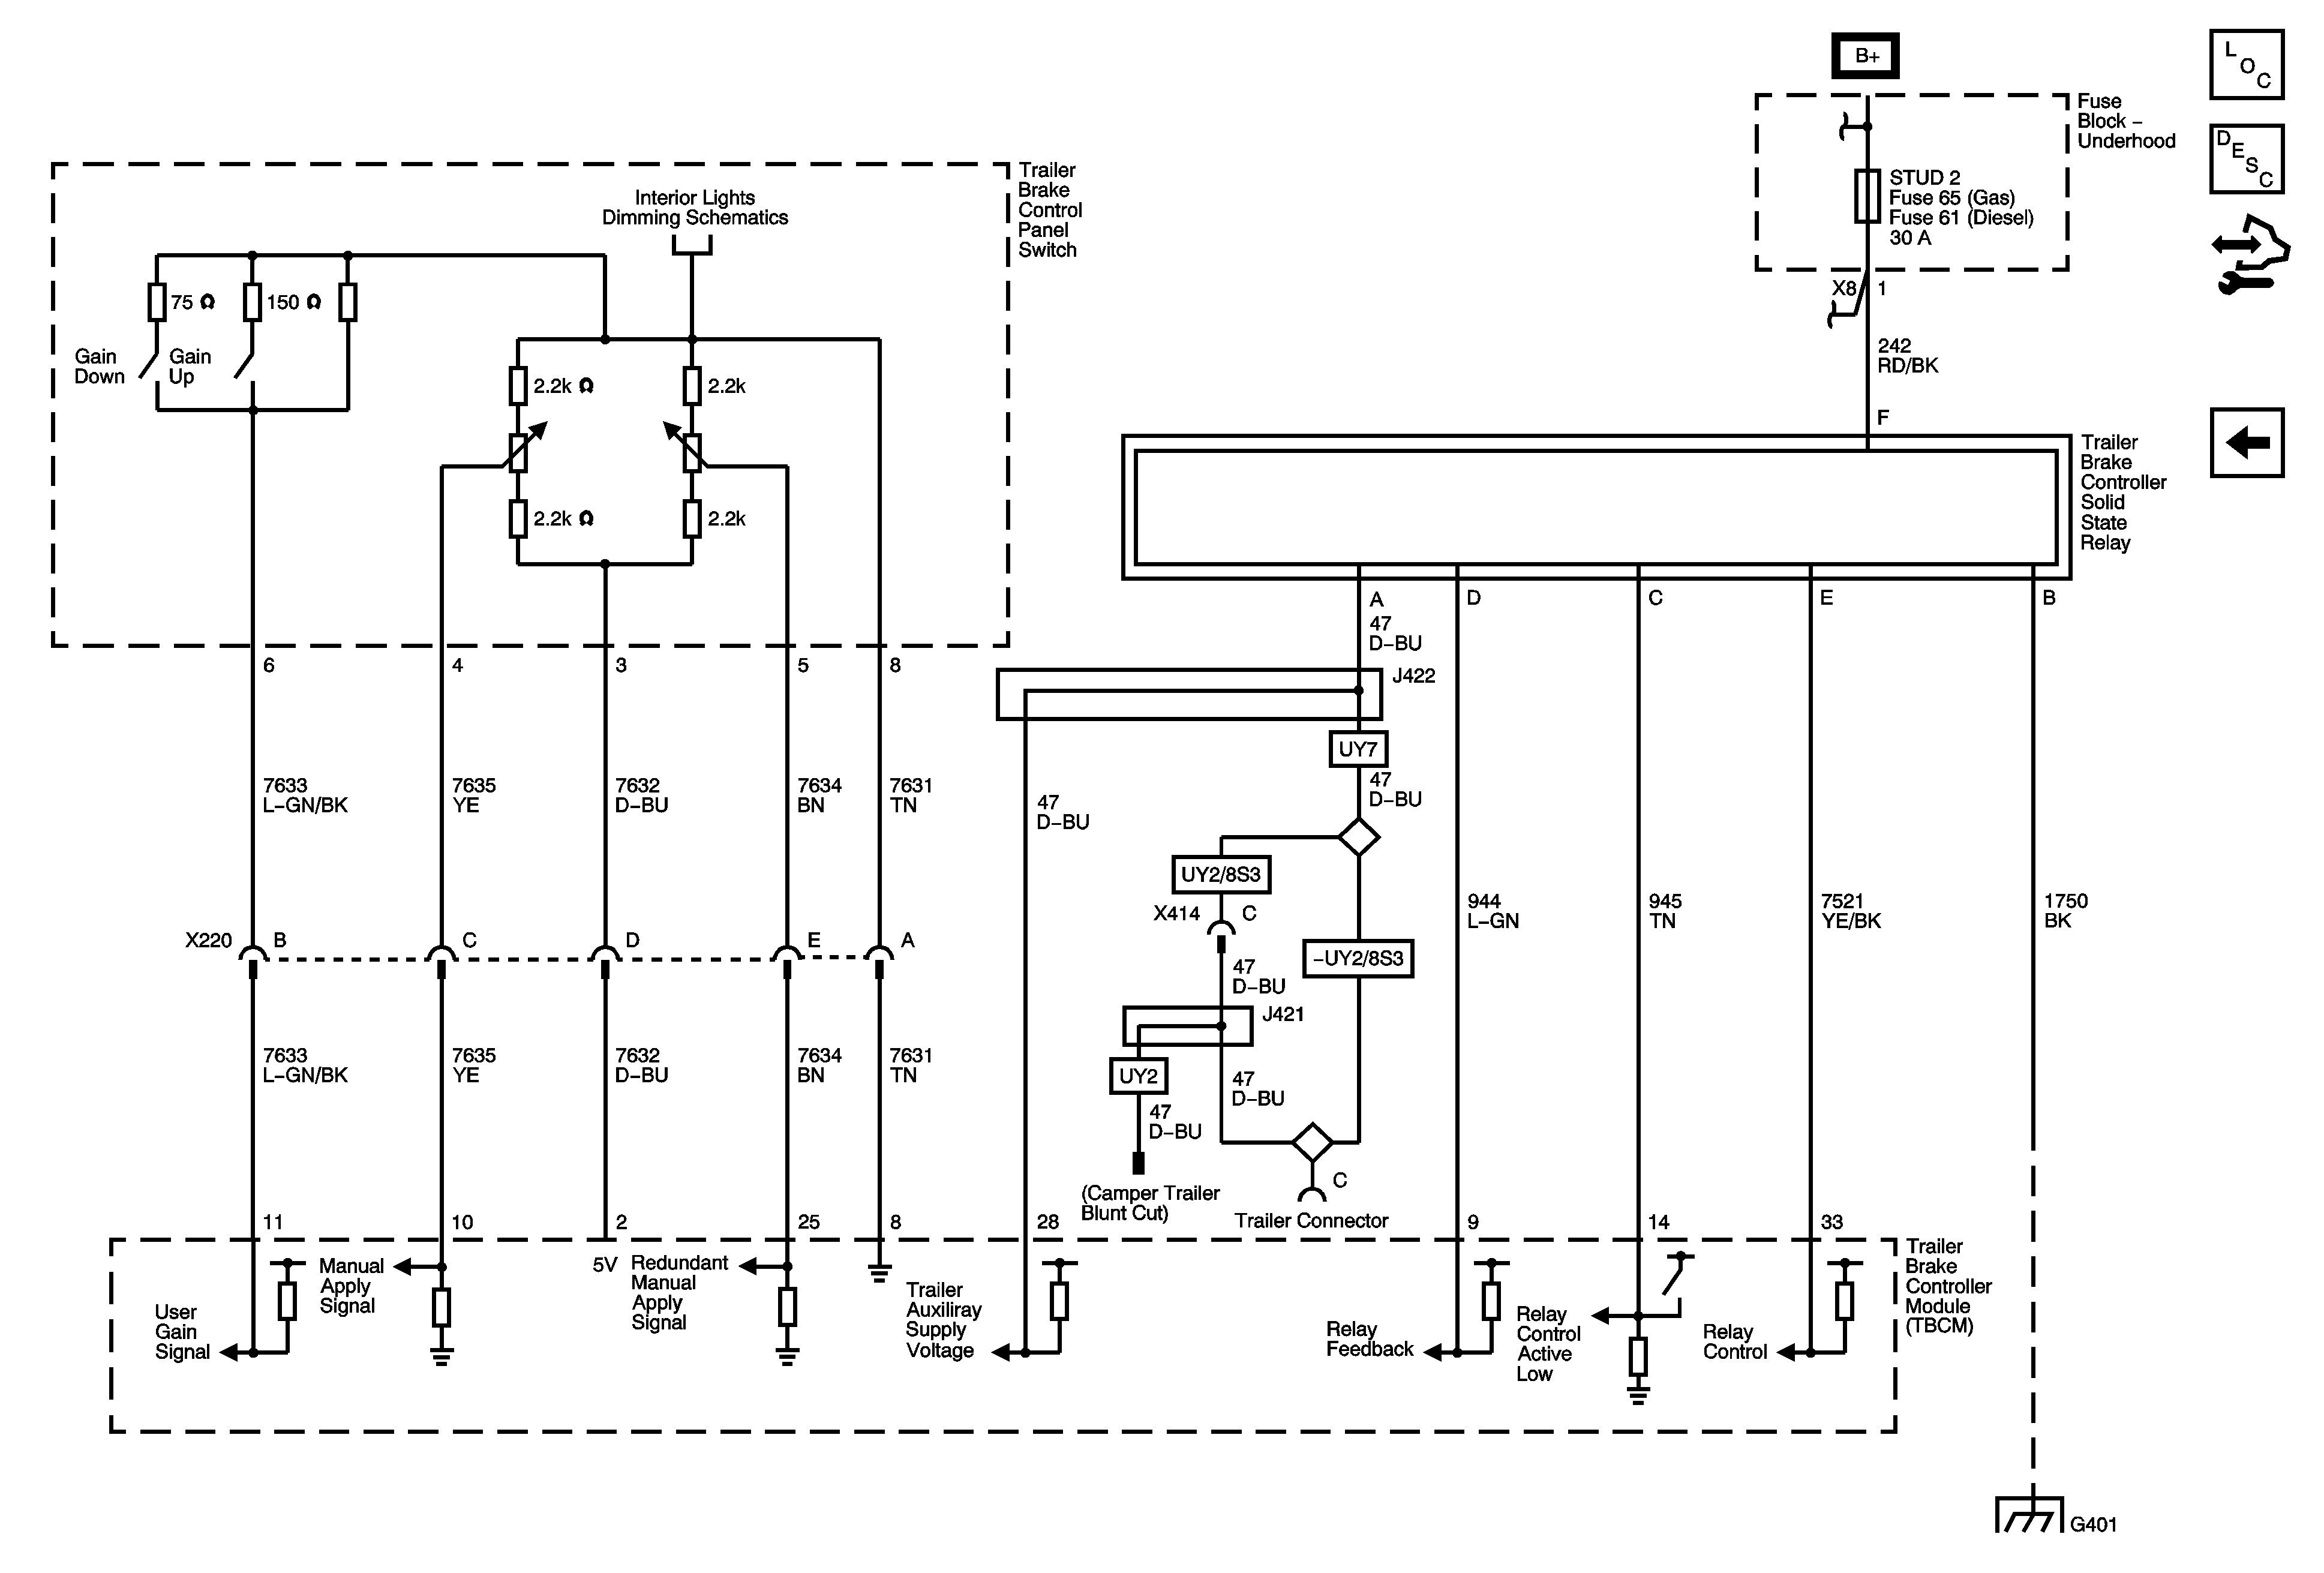 2005 Gmc Trailer Wiring Diagram Wiring Diagram Official Official Saleebalocchi It